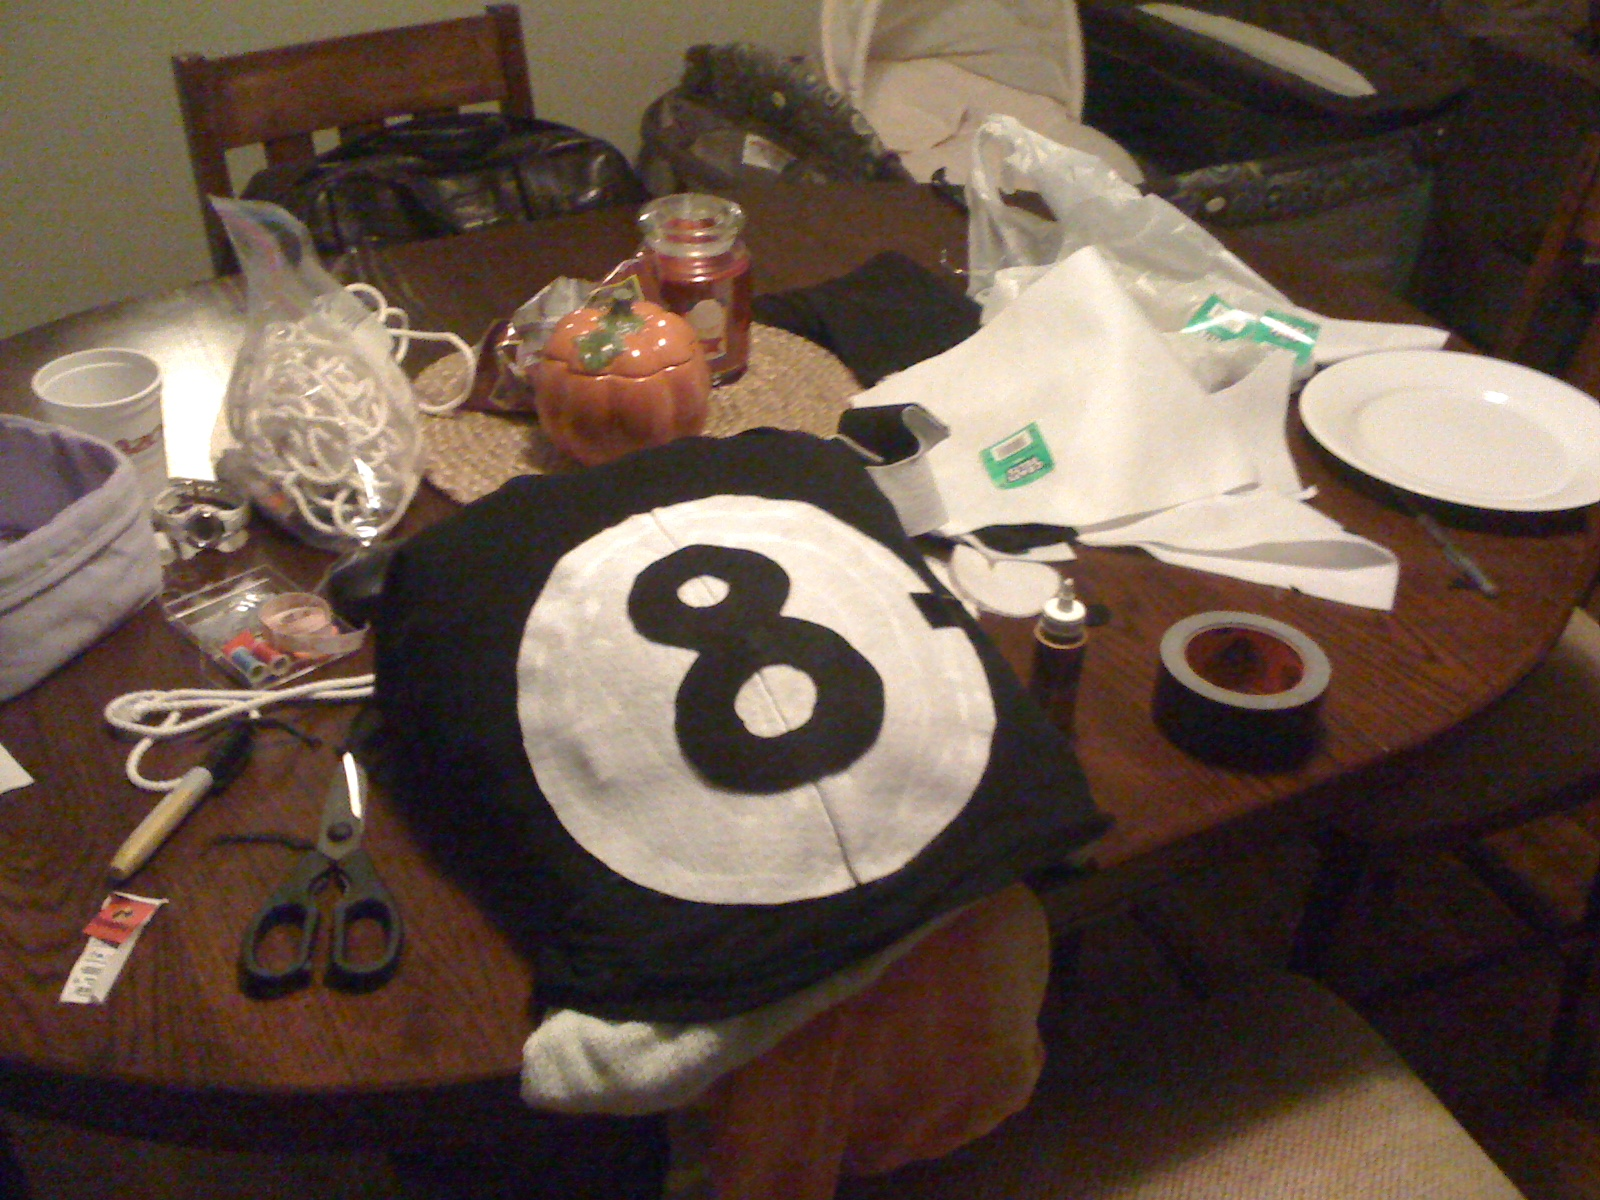 pregnant costume idea posted in pregnant costumestagged eight ball belly - Magic 8 Ball Halloween Costume